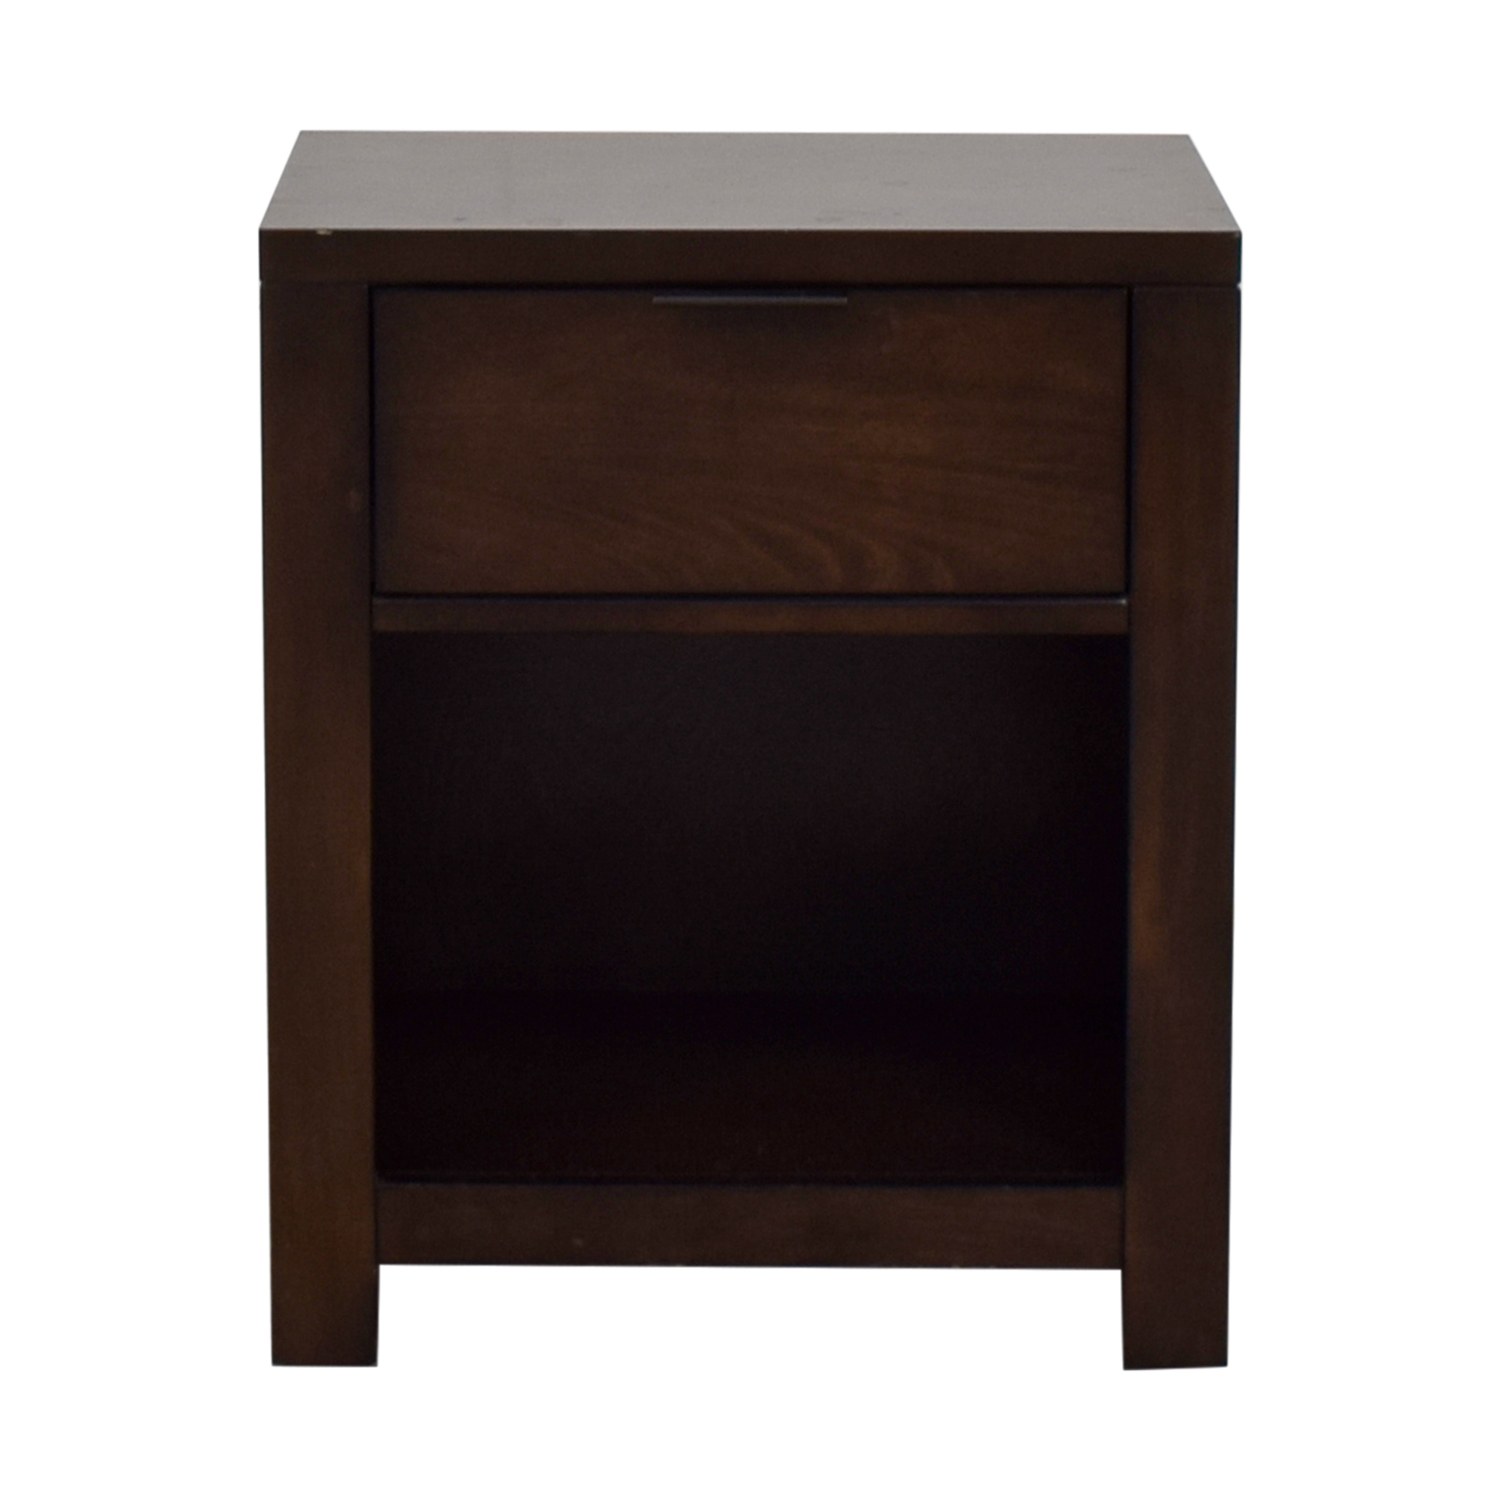 Macy's Macy's Tribeca Single Drawer Nightstand Tables